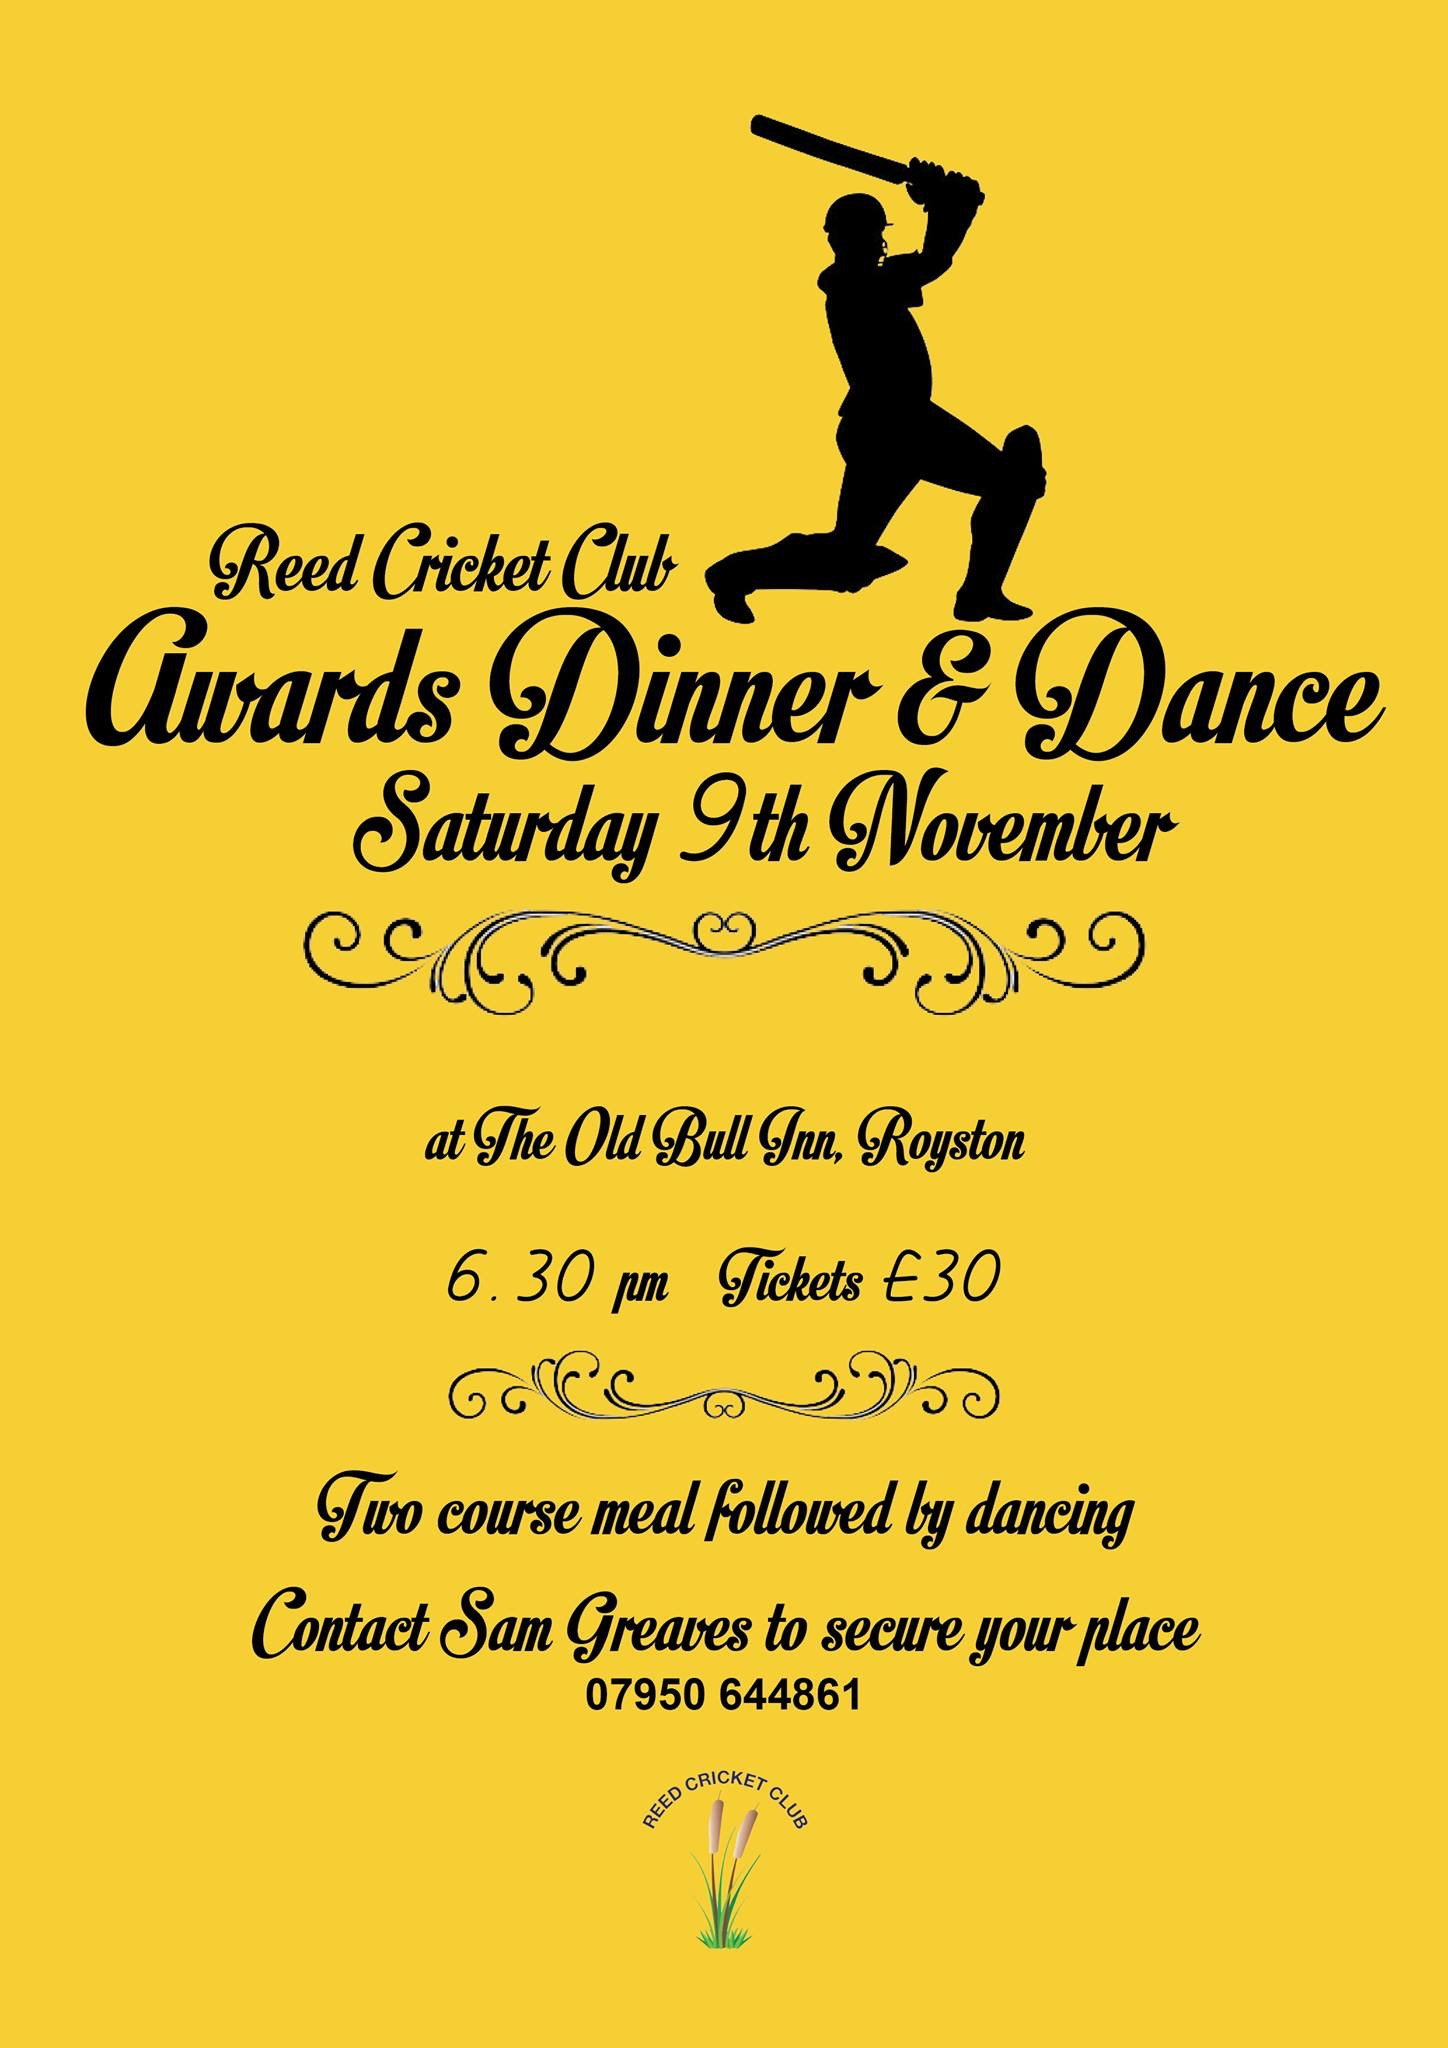 Reed CC Annual Awards Dinner & Dance, 9th November